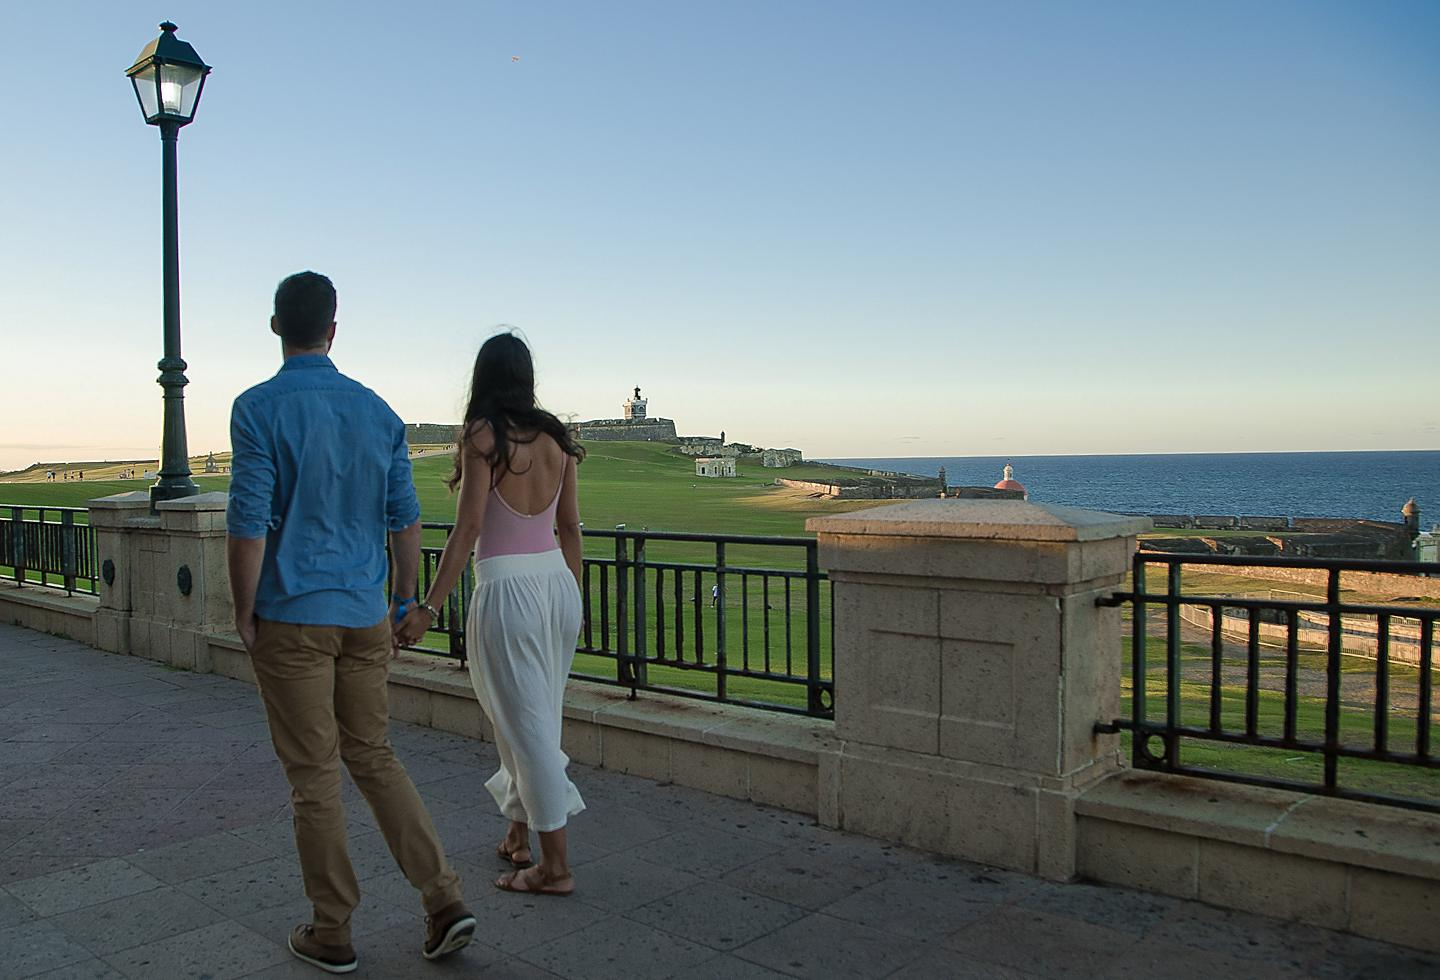 Couple Enjoying the View of the Forts on a Stroll